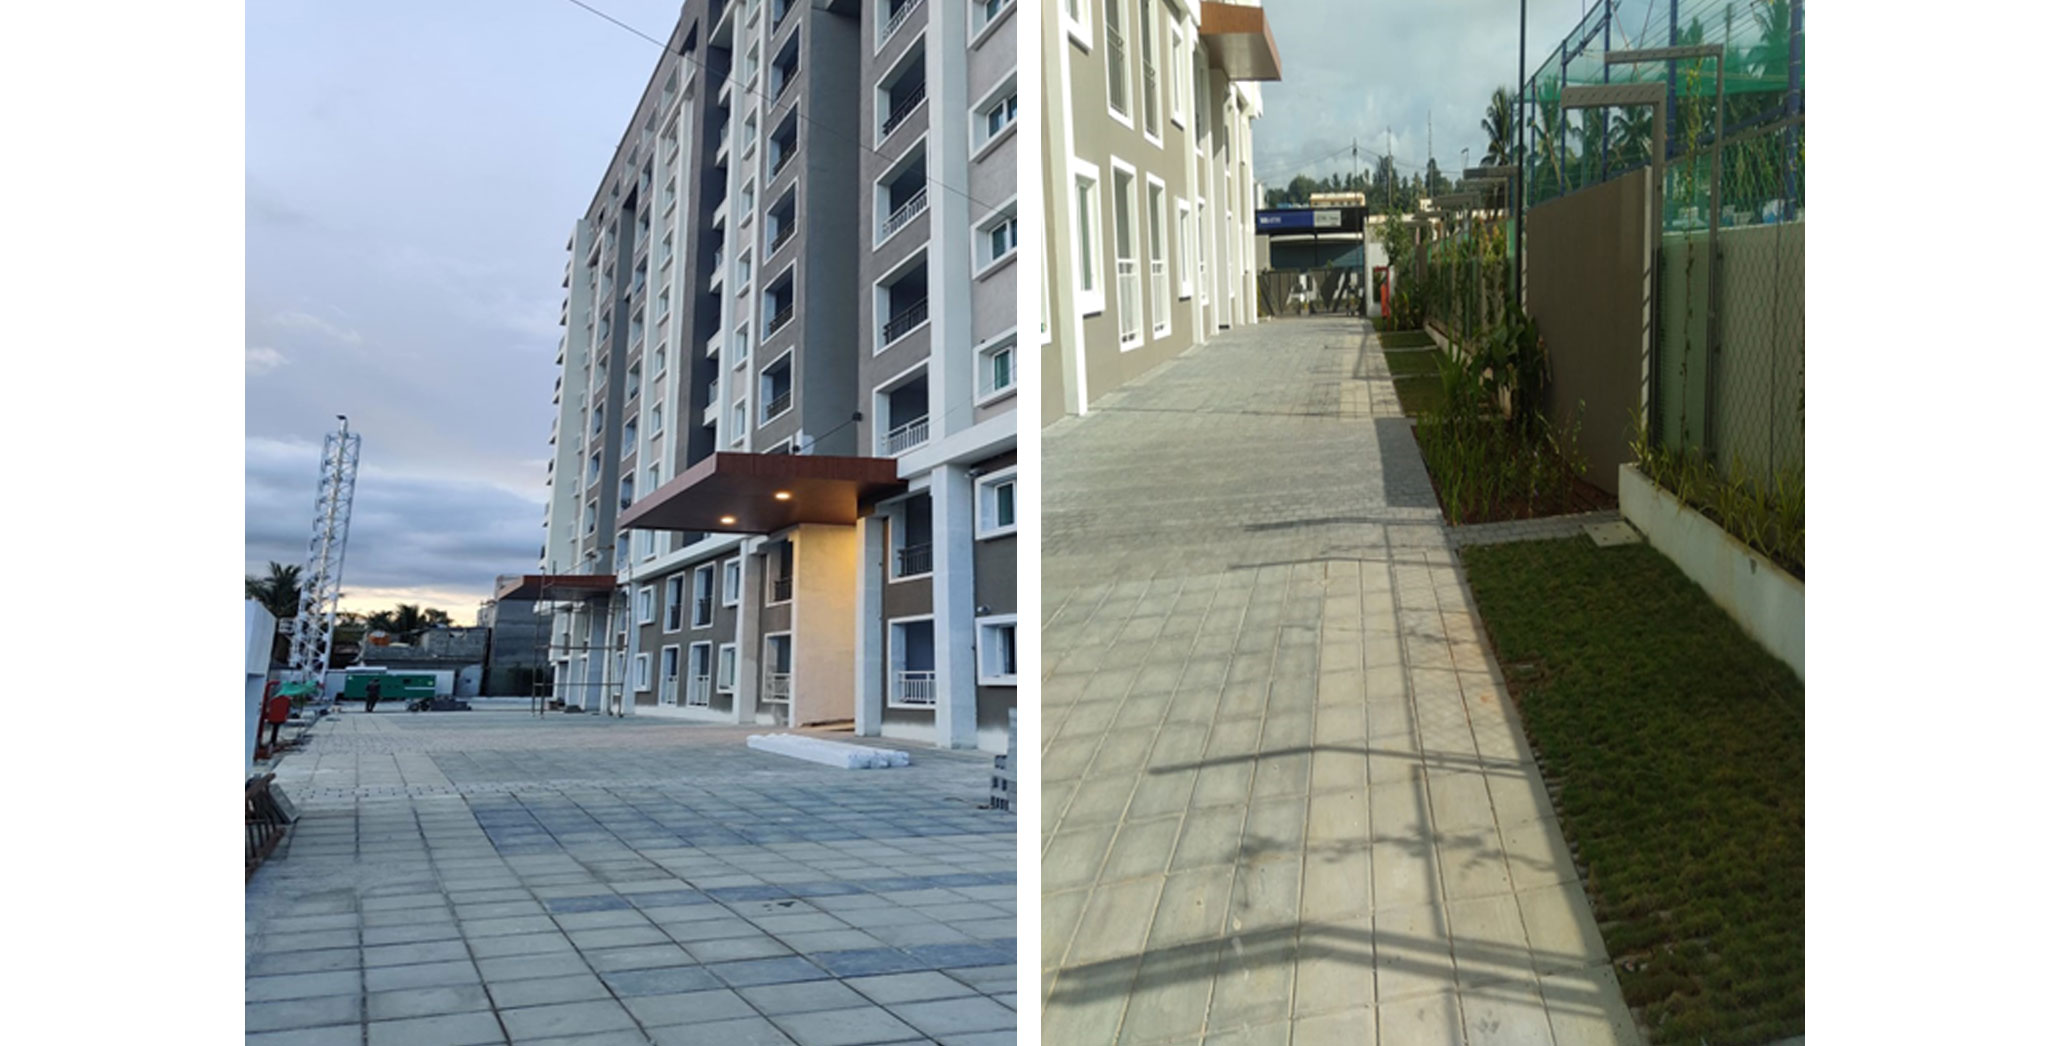 Jul 2021 - External Development: Drive way and  plantation is completed